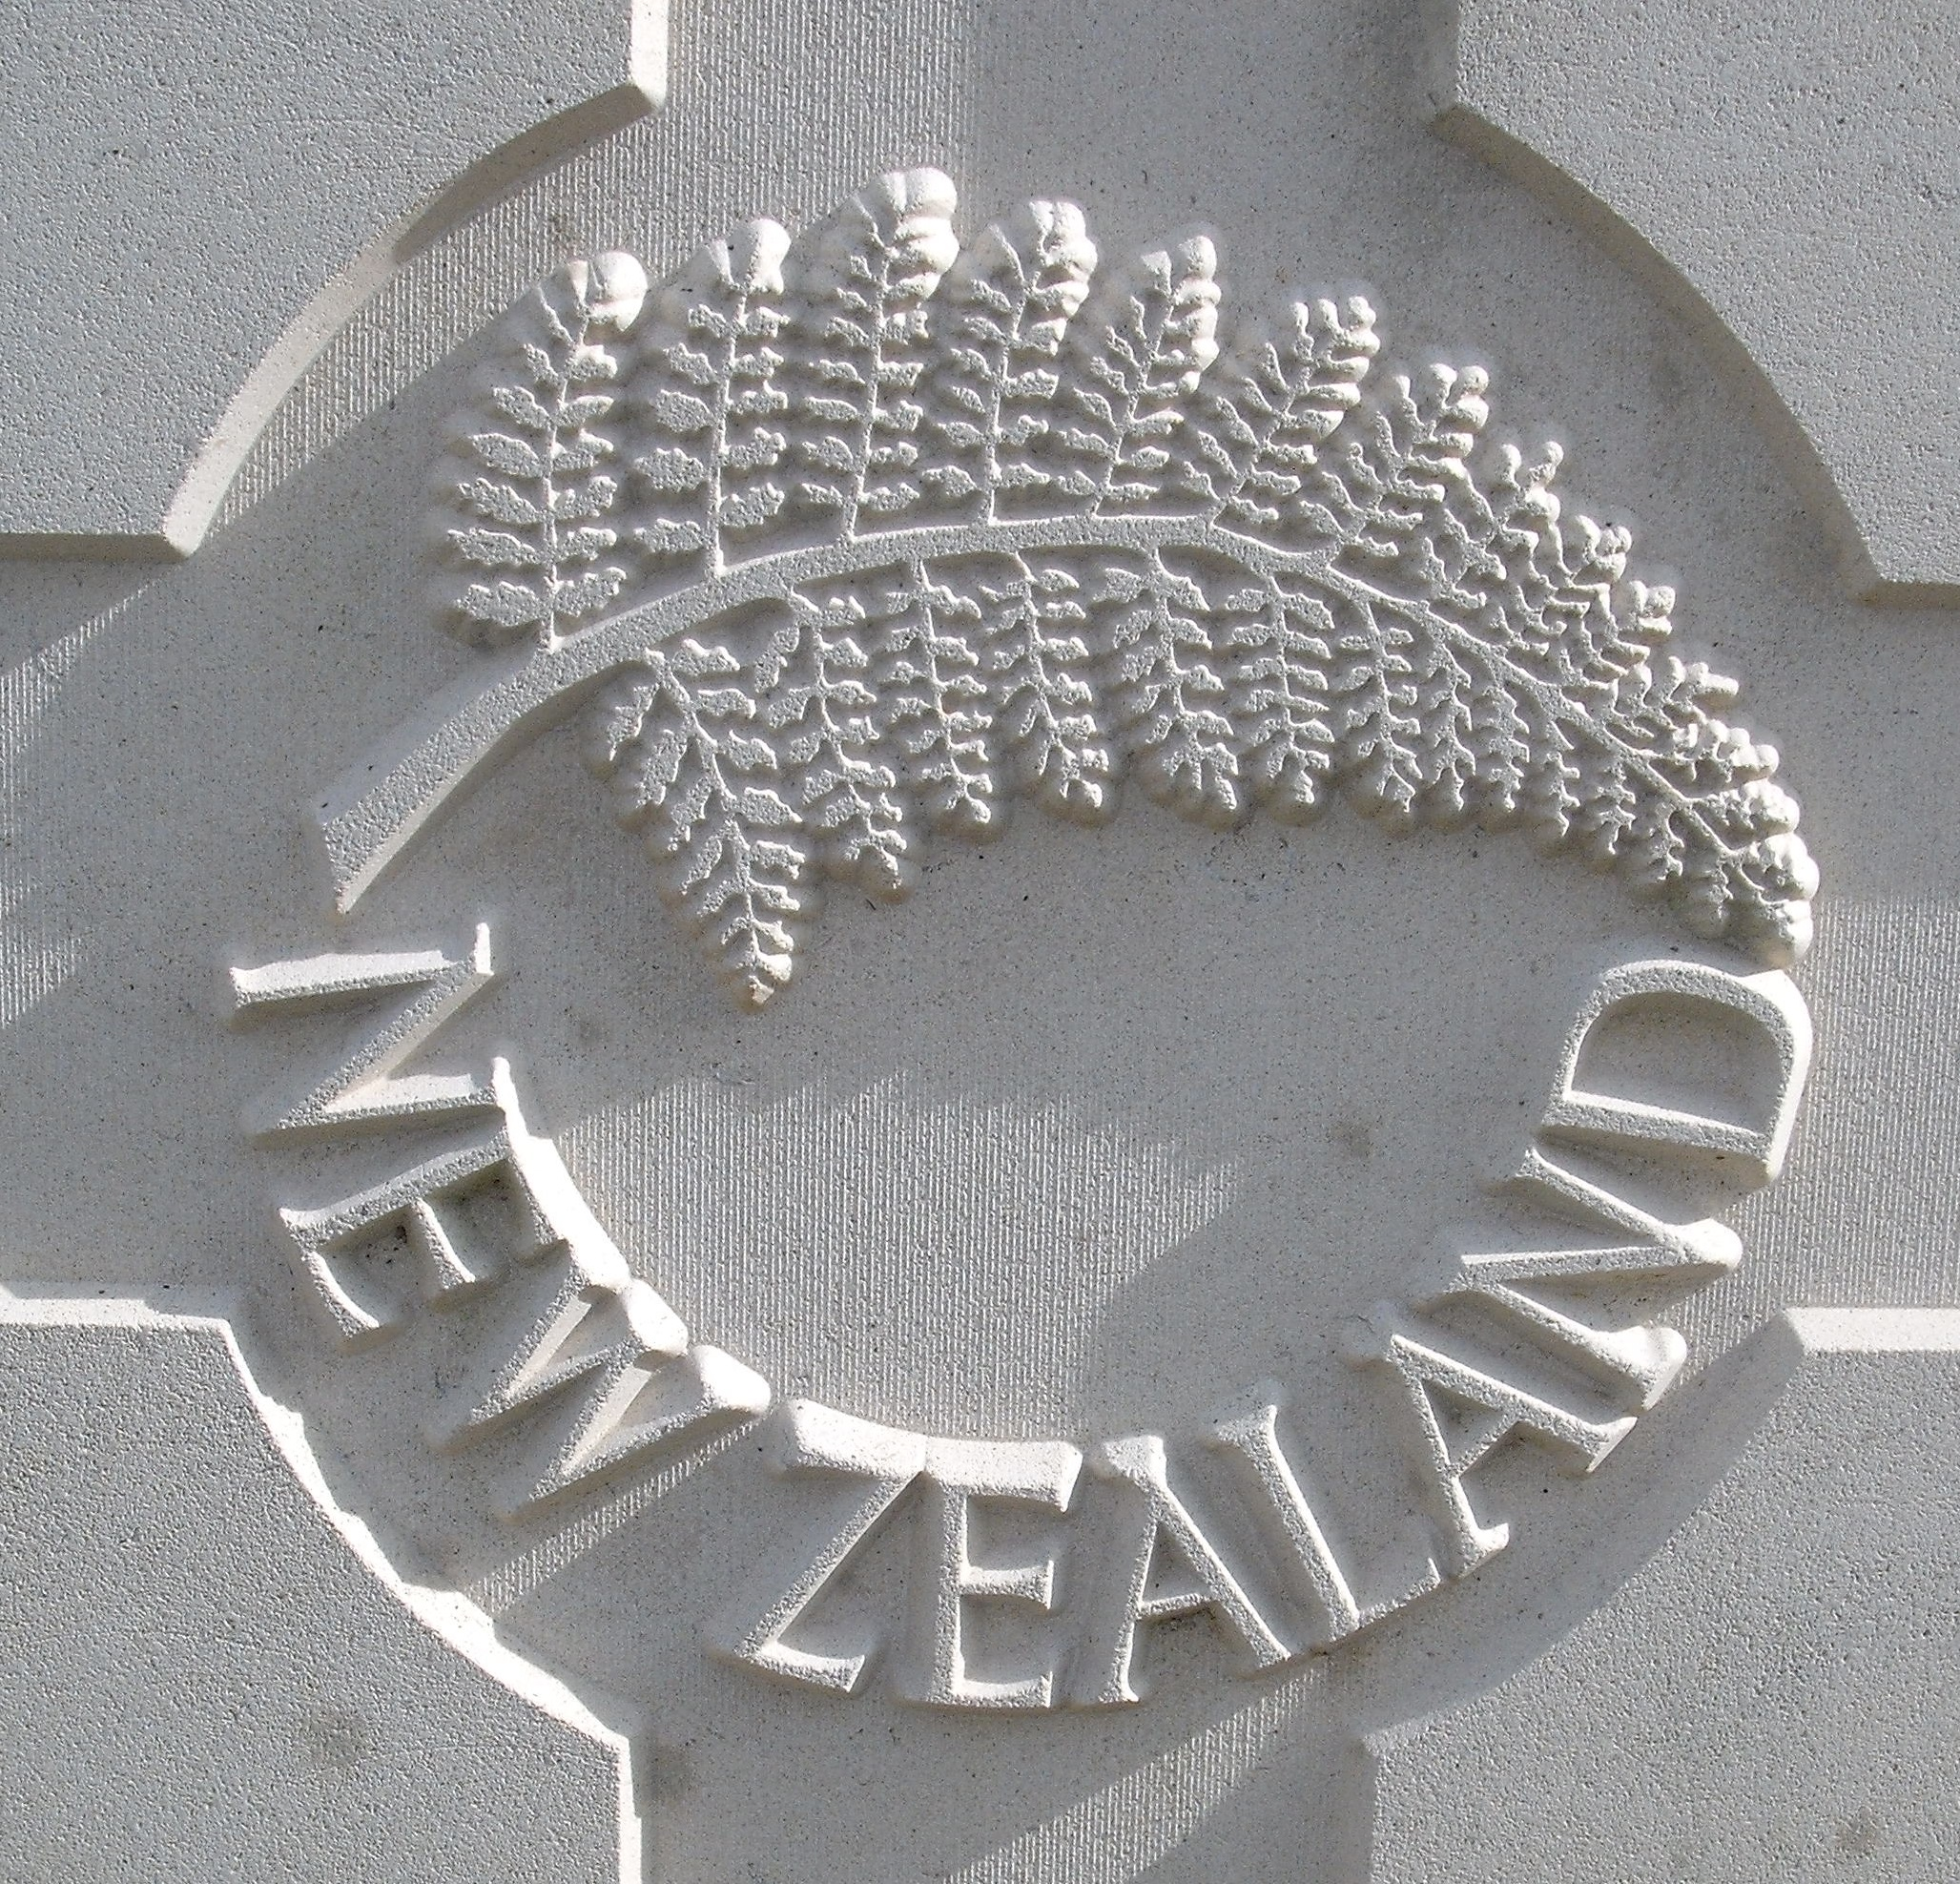 Capbadge of the New Zealand Expeditionary Force